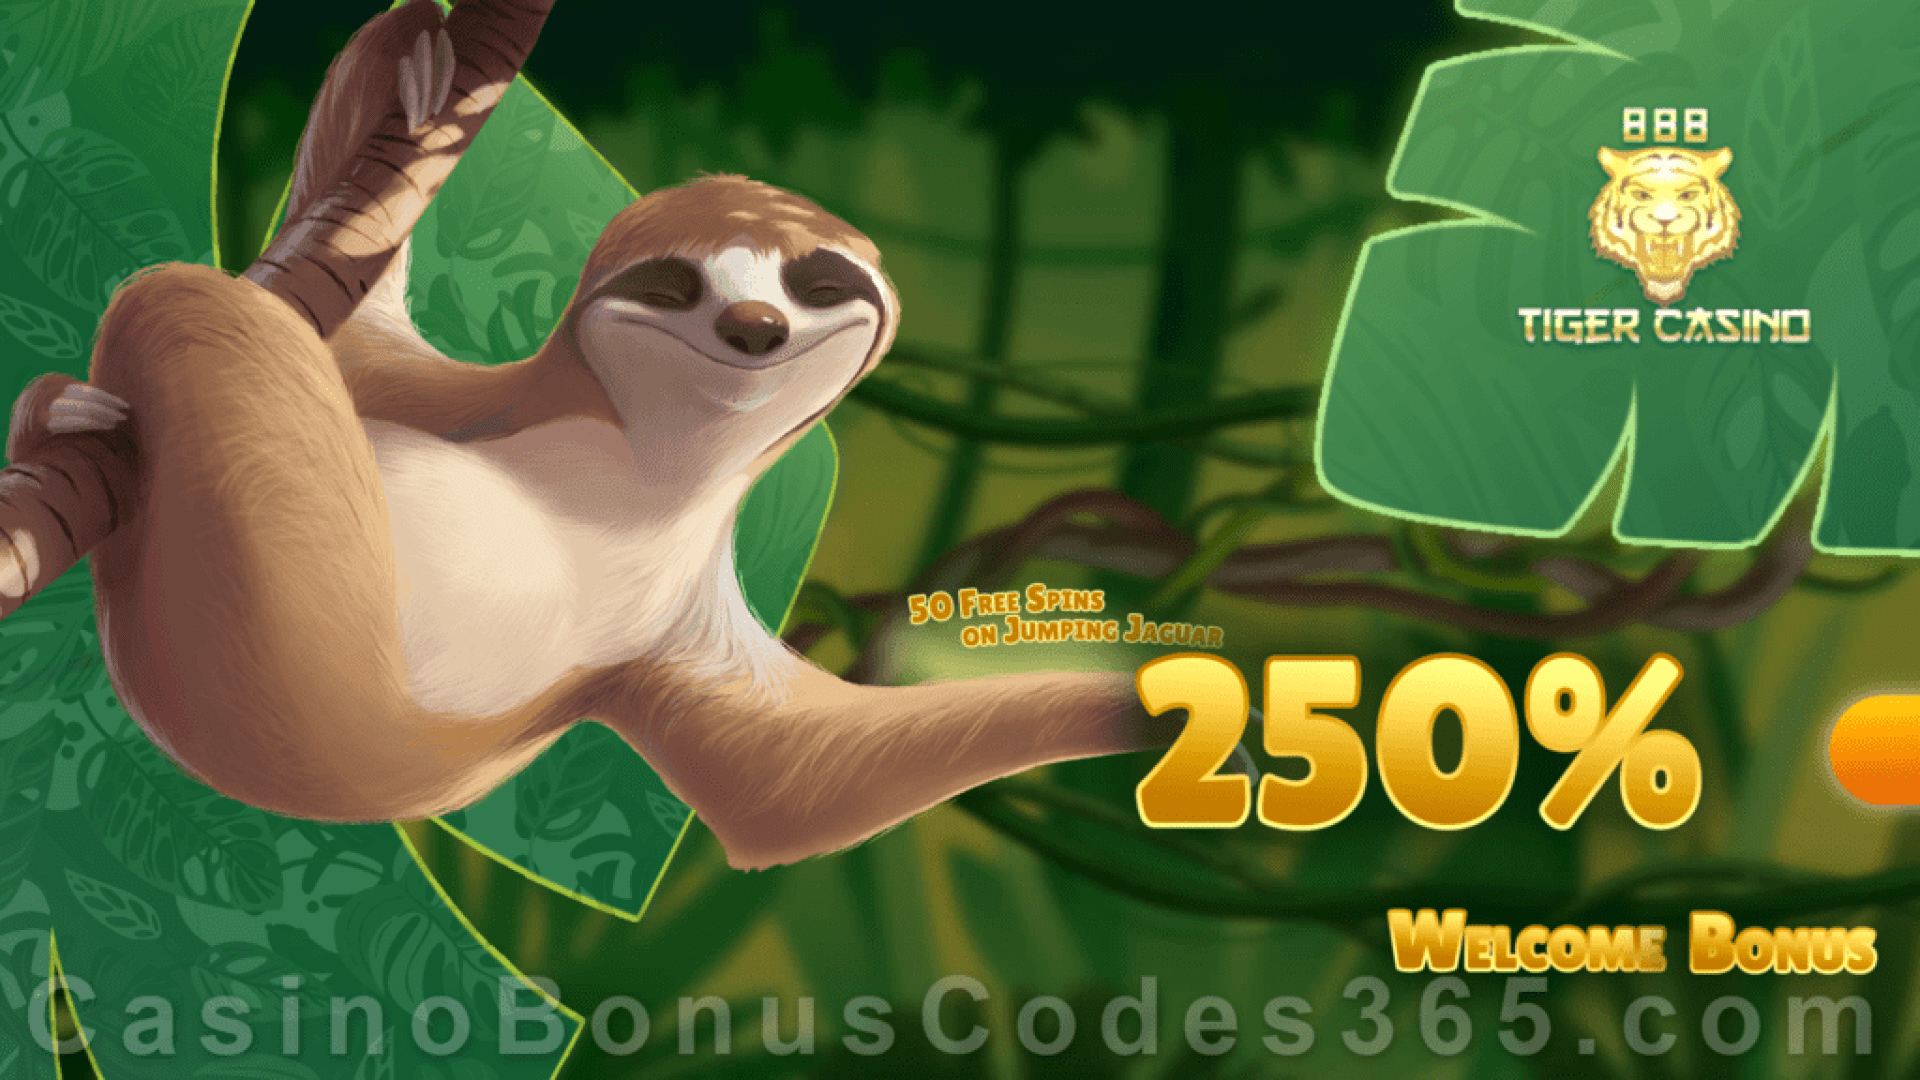 888 Tiger Casino 250% Match Bonus plus 50 FREE Spins on Rival Gaming Jumping Jaguar Welcome Package